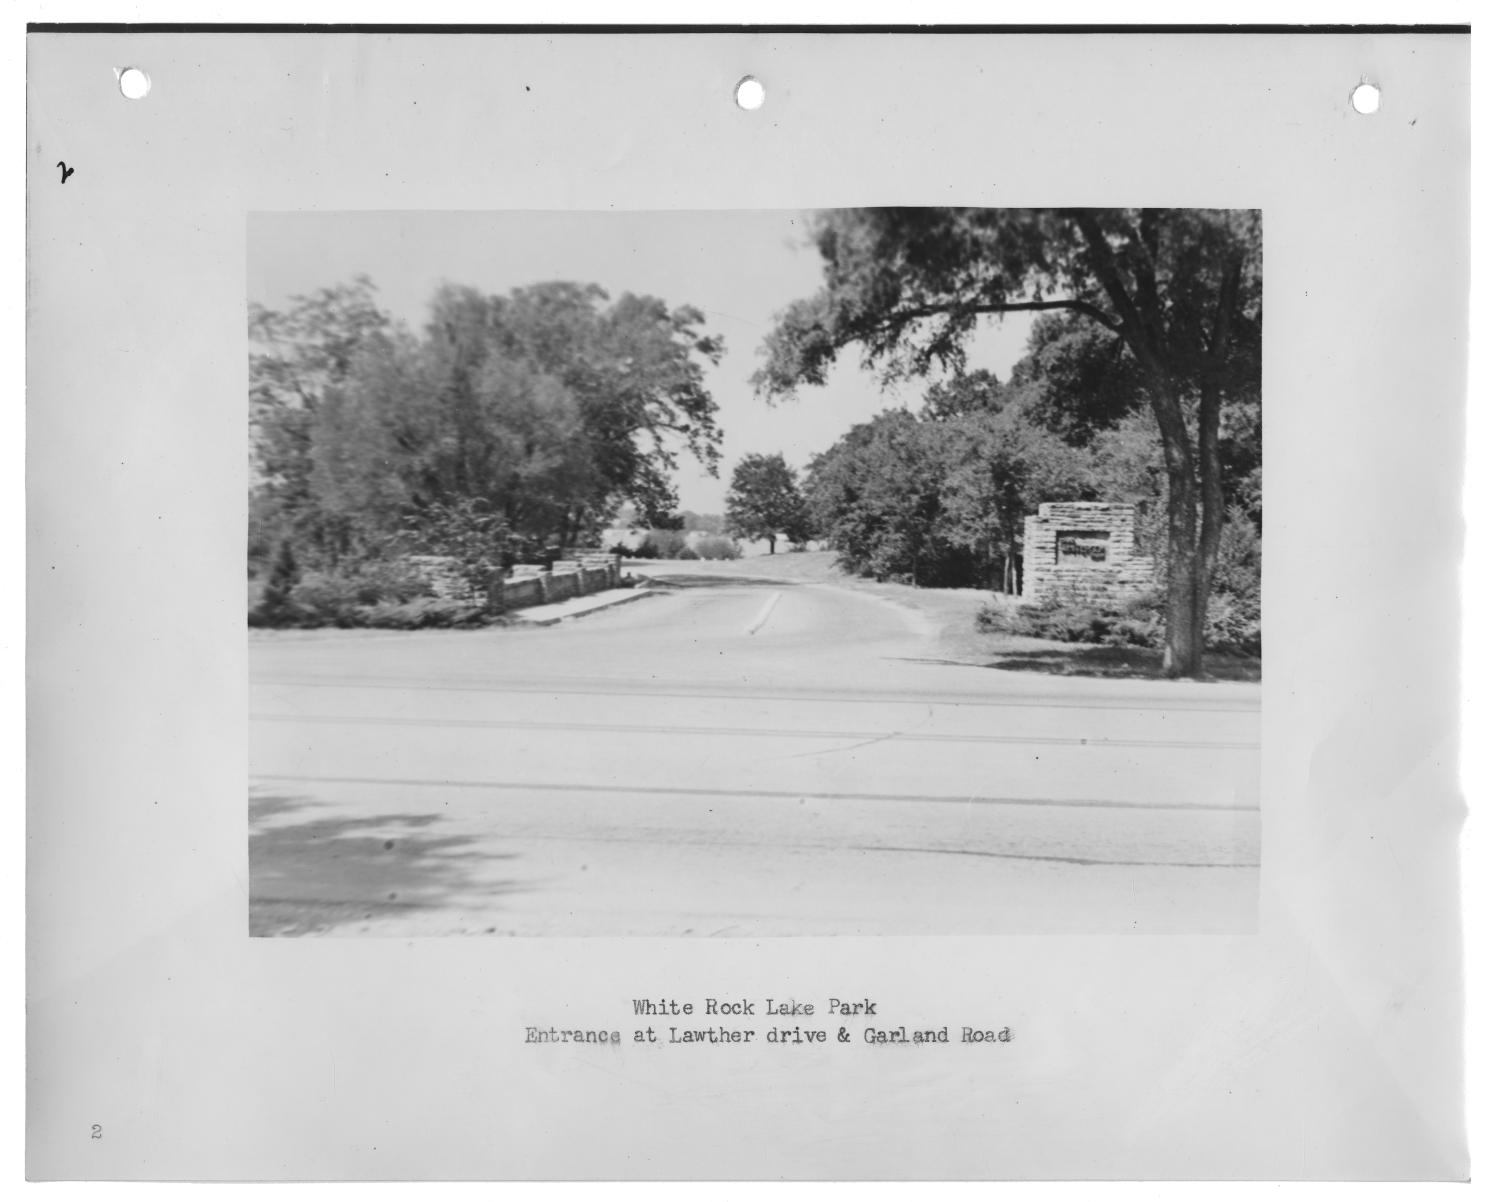 """[Photograph of Entrance to White Rock Lake Park], Photograph of a driveway leading into White Rock Lake Park. There is a small stone wall on the left side of the road and a stone column with the park name on the right side of the drive. There are trees on either side of the road and the lake is partially visible in the background. The photograph is attached to a page labeled """"2""""; text under the image says """"White Rock Lake Park, Entrance at Lawther drive & Garland Road."""","""